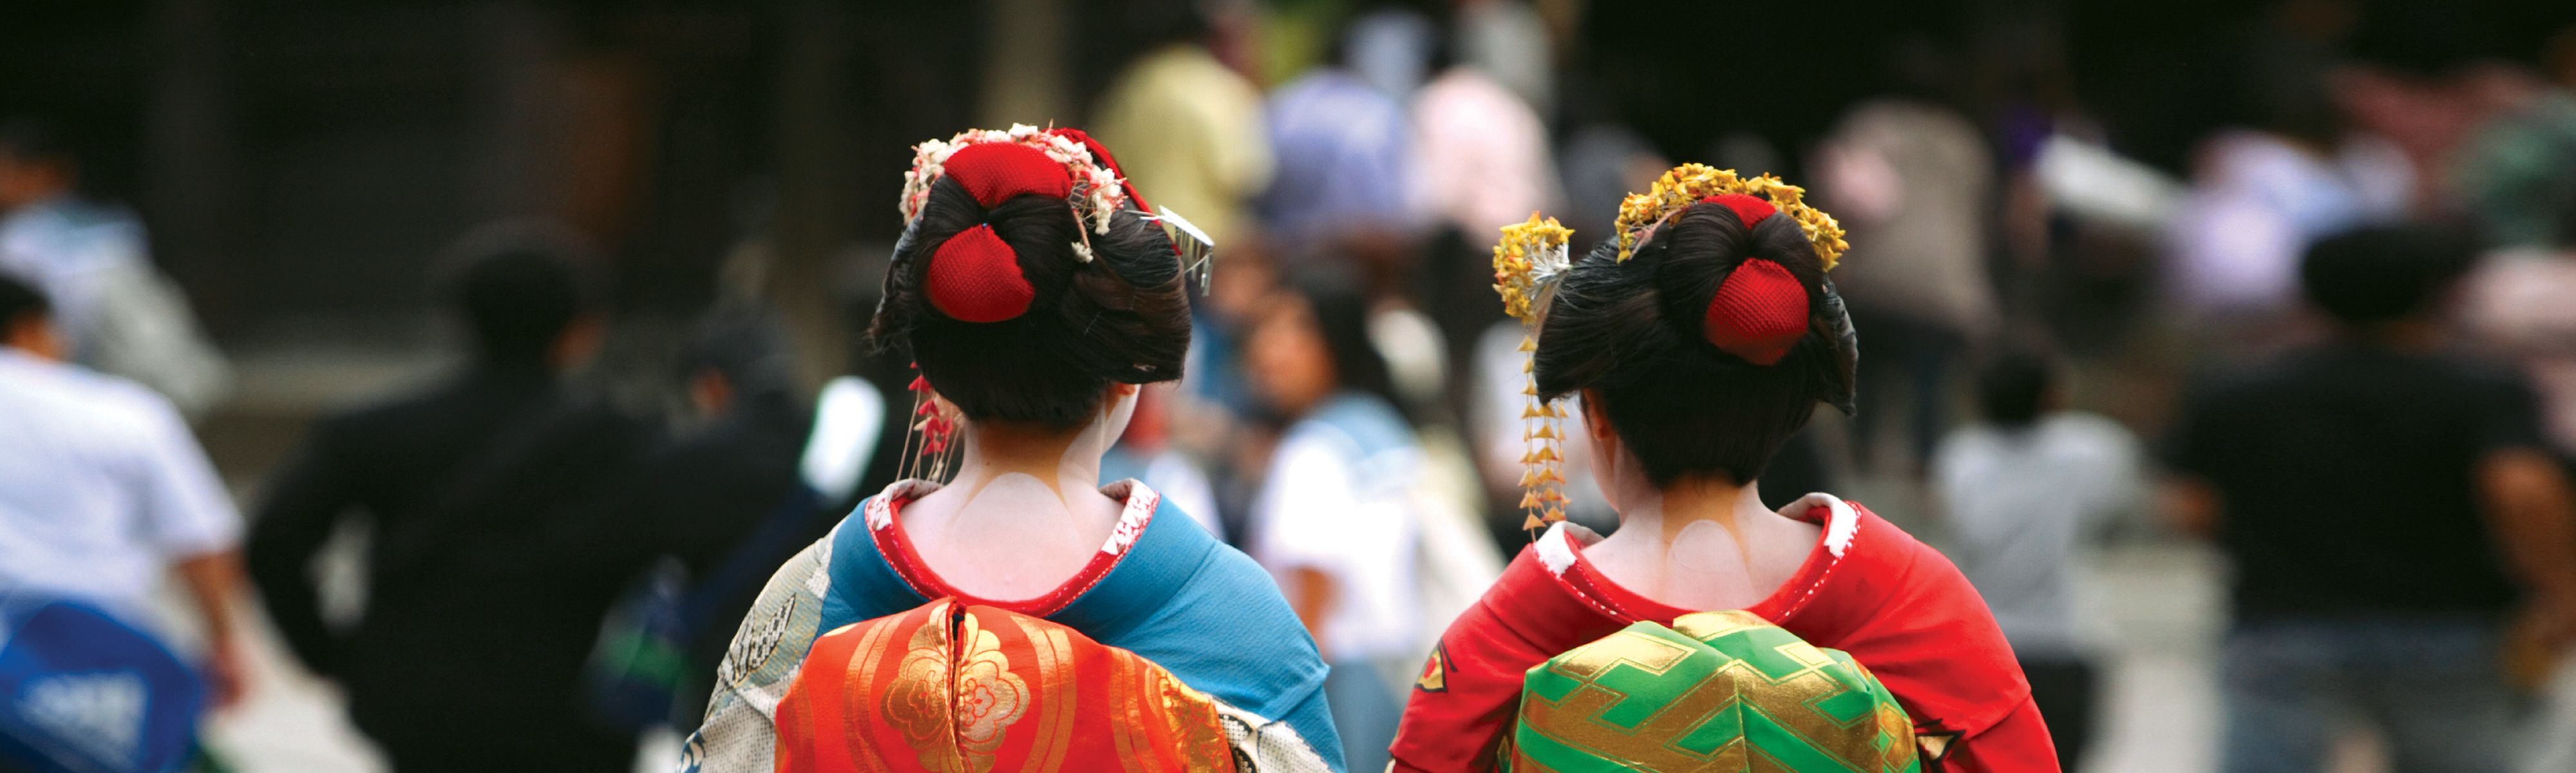 two japanese geisha women dressed in traditional costumes walking away